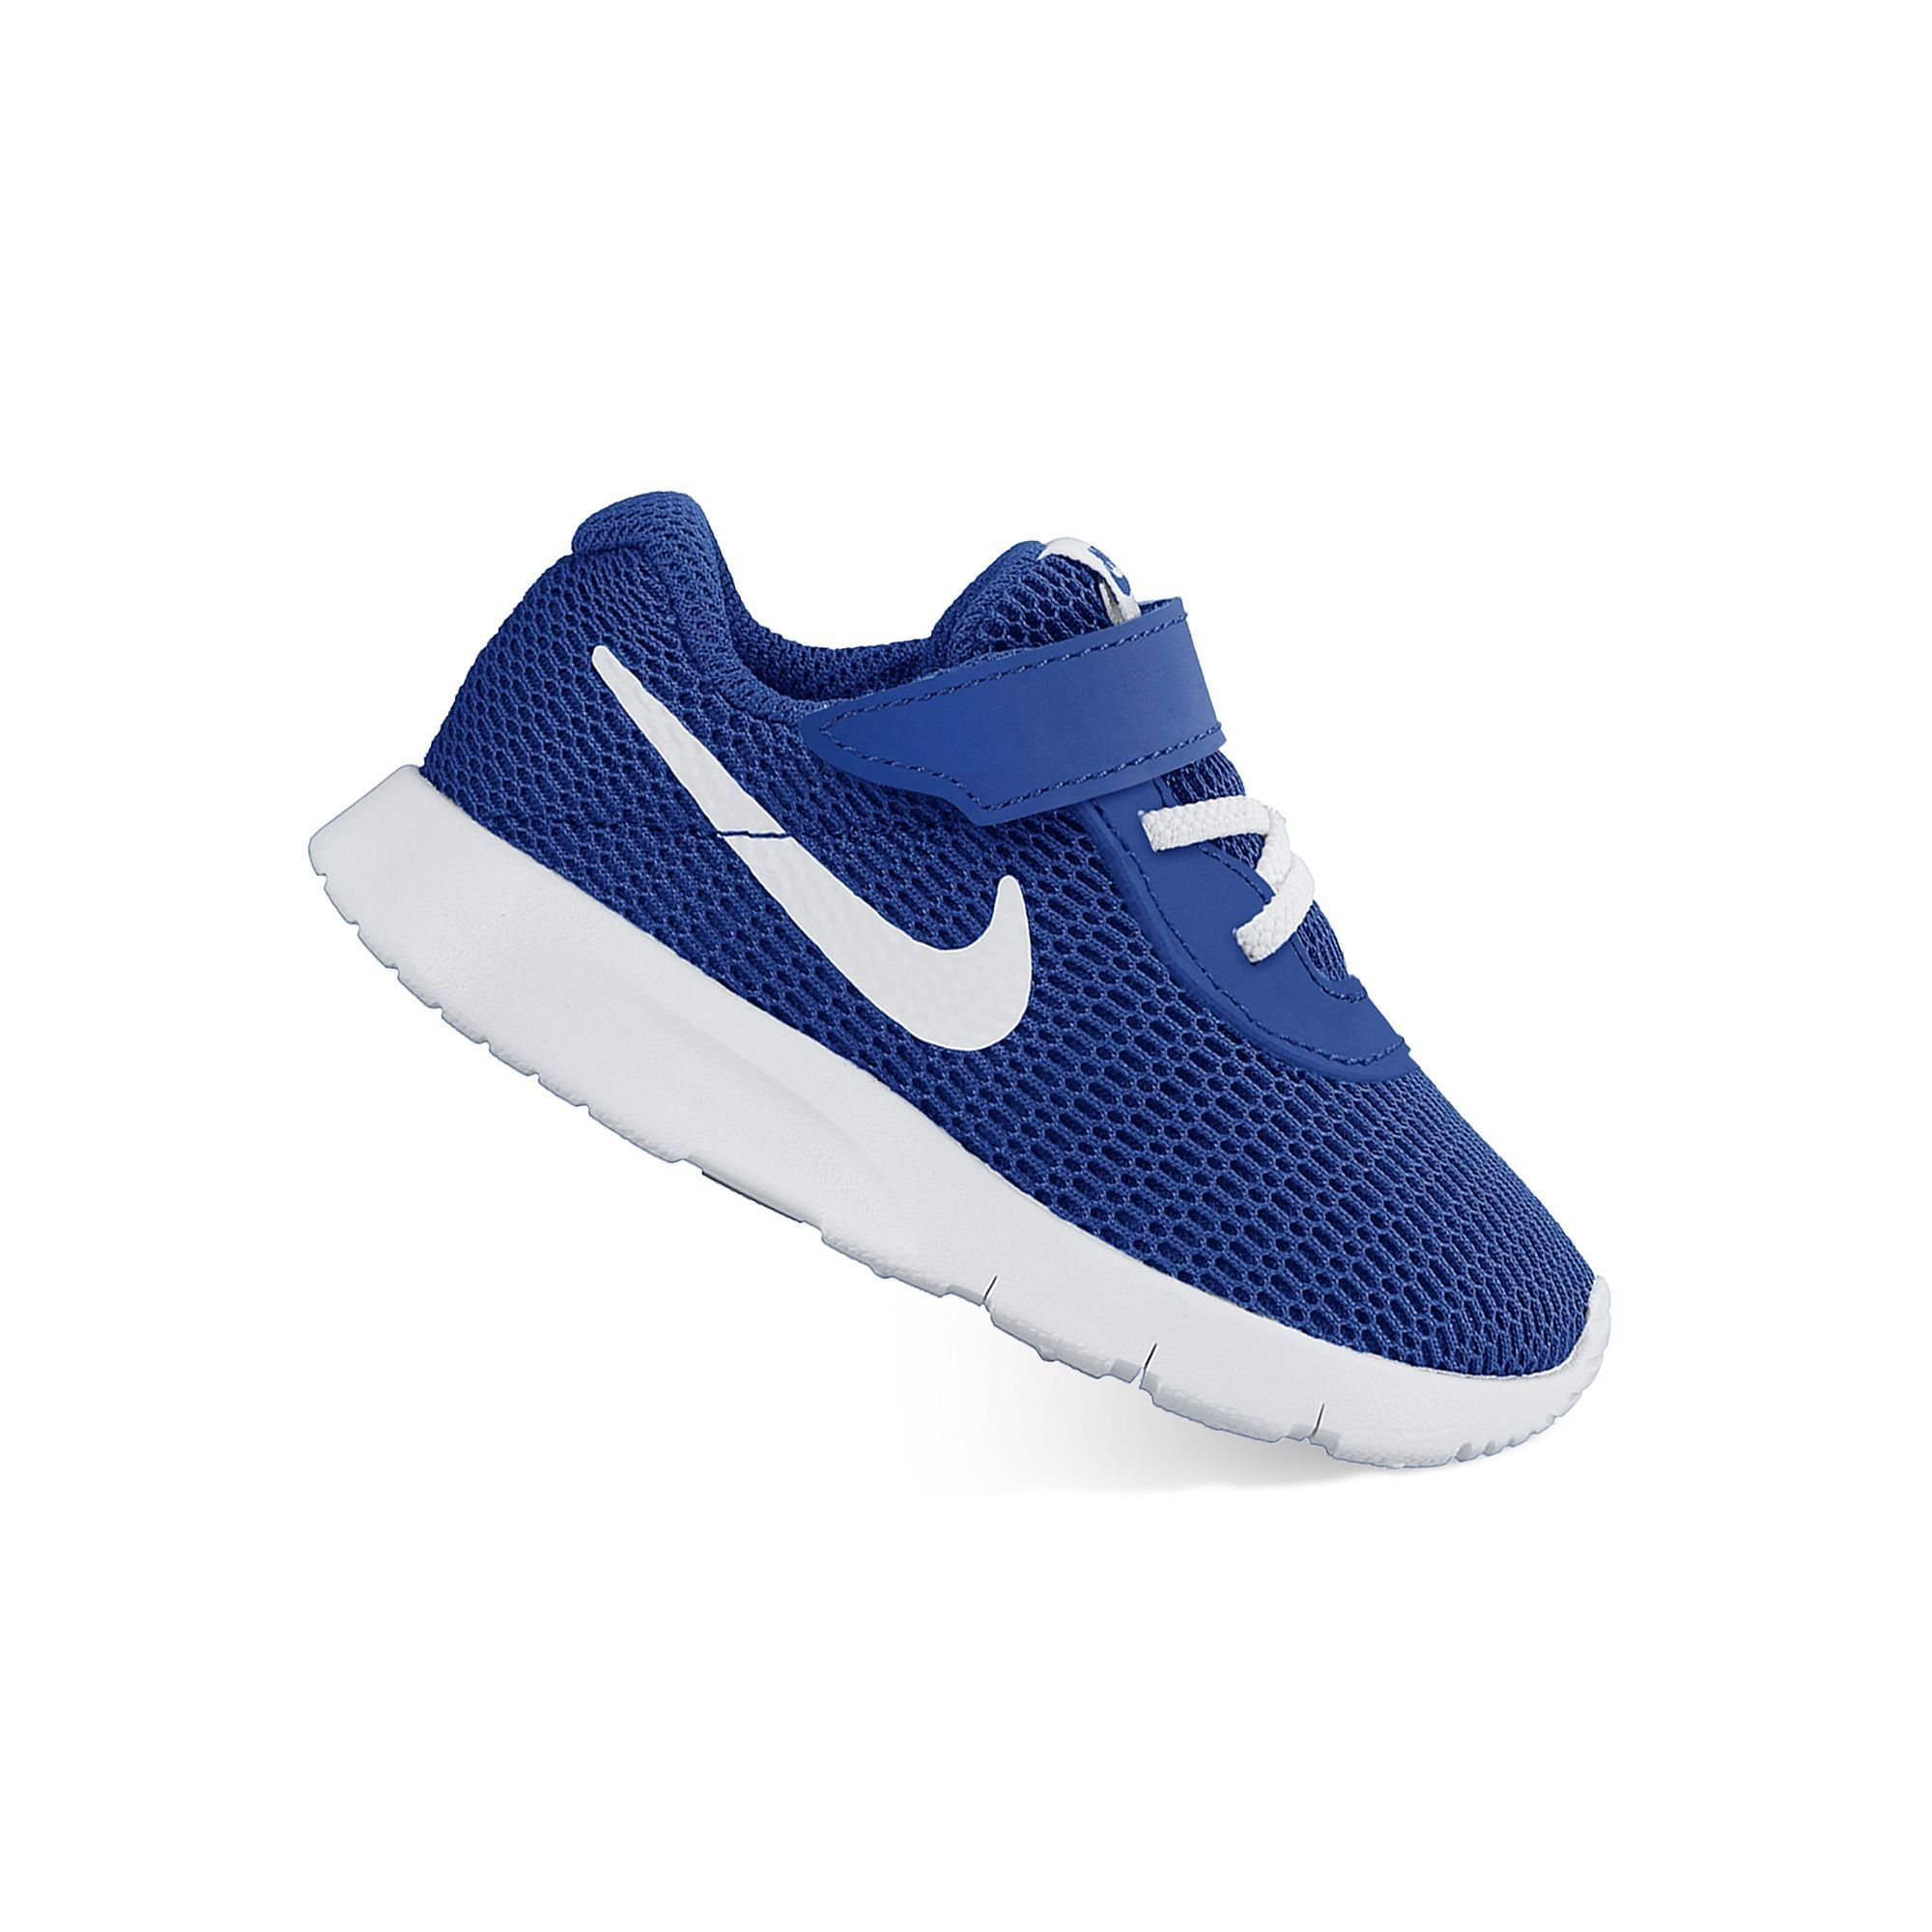 3a0a6a6c276 Nike Tanjun Toddler Boys' Shoes, Size: 4 T, Blue | Products | Nike ...